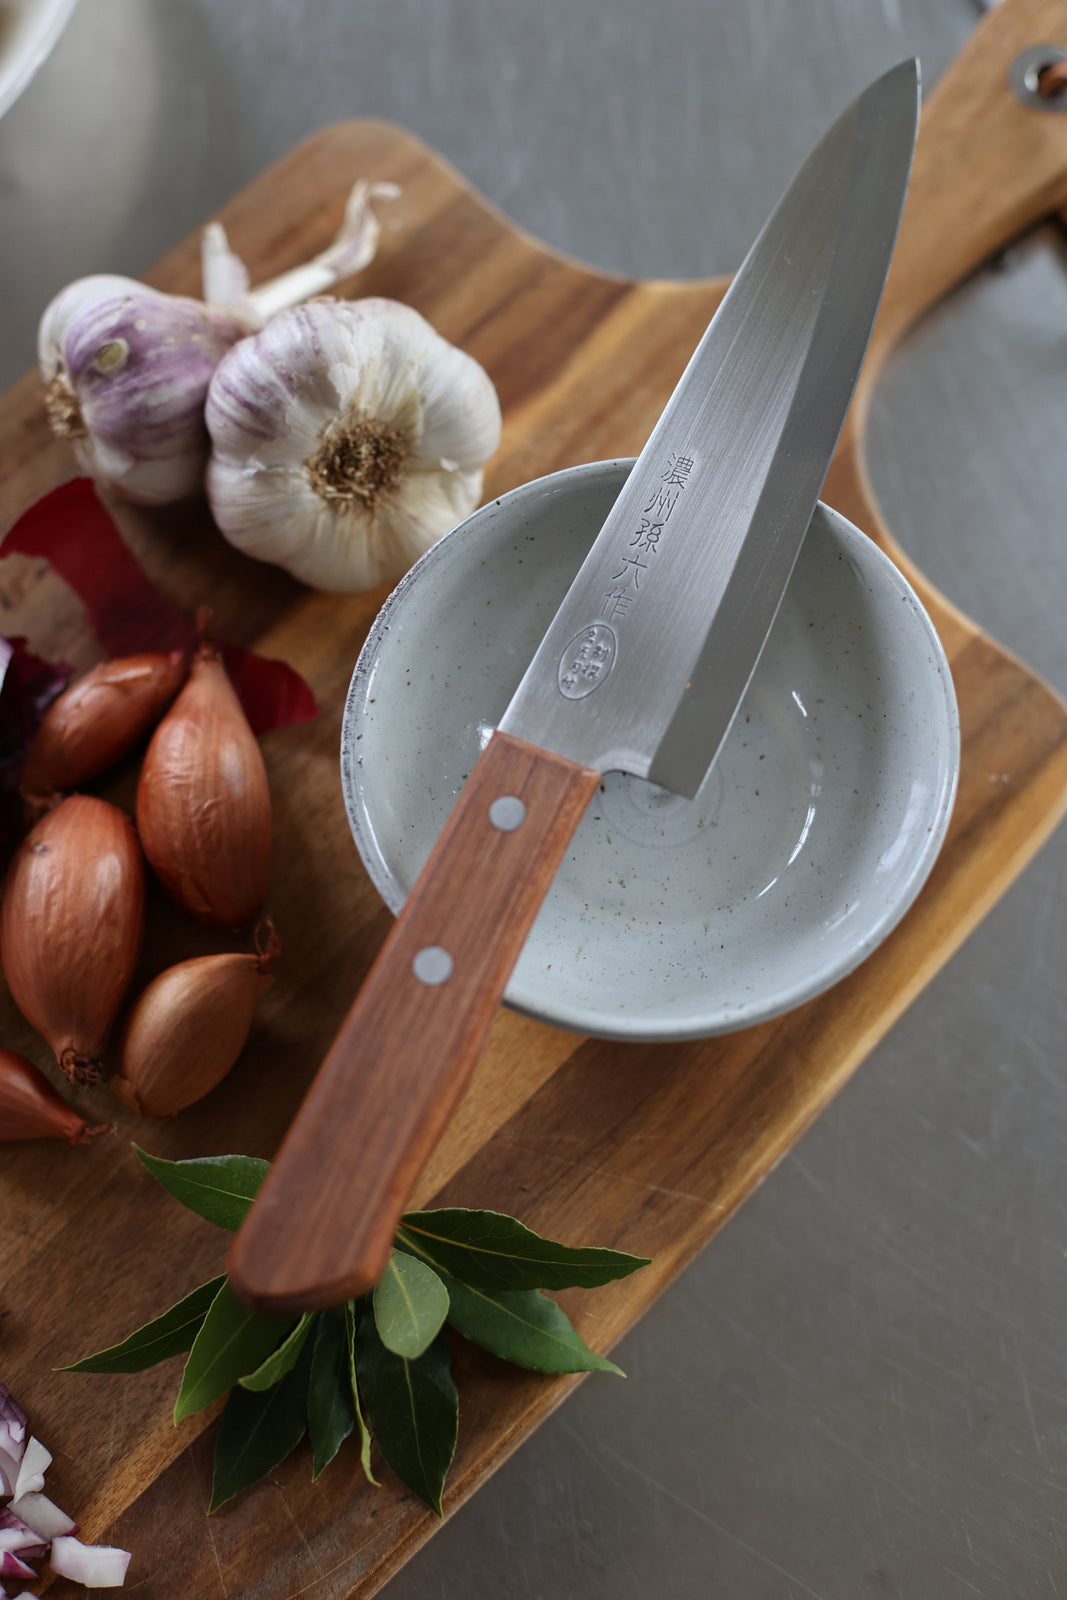 Nakano Wooden Series Knife Set